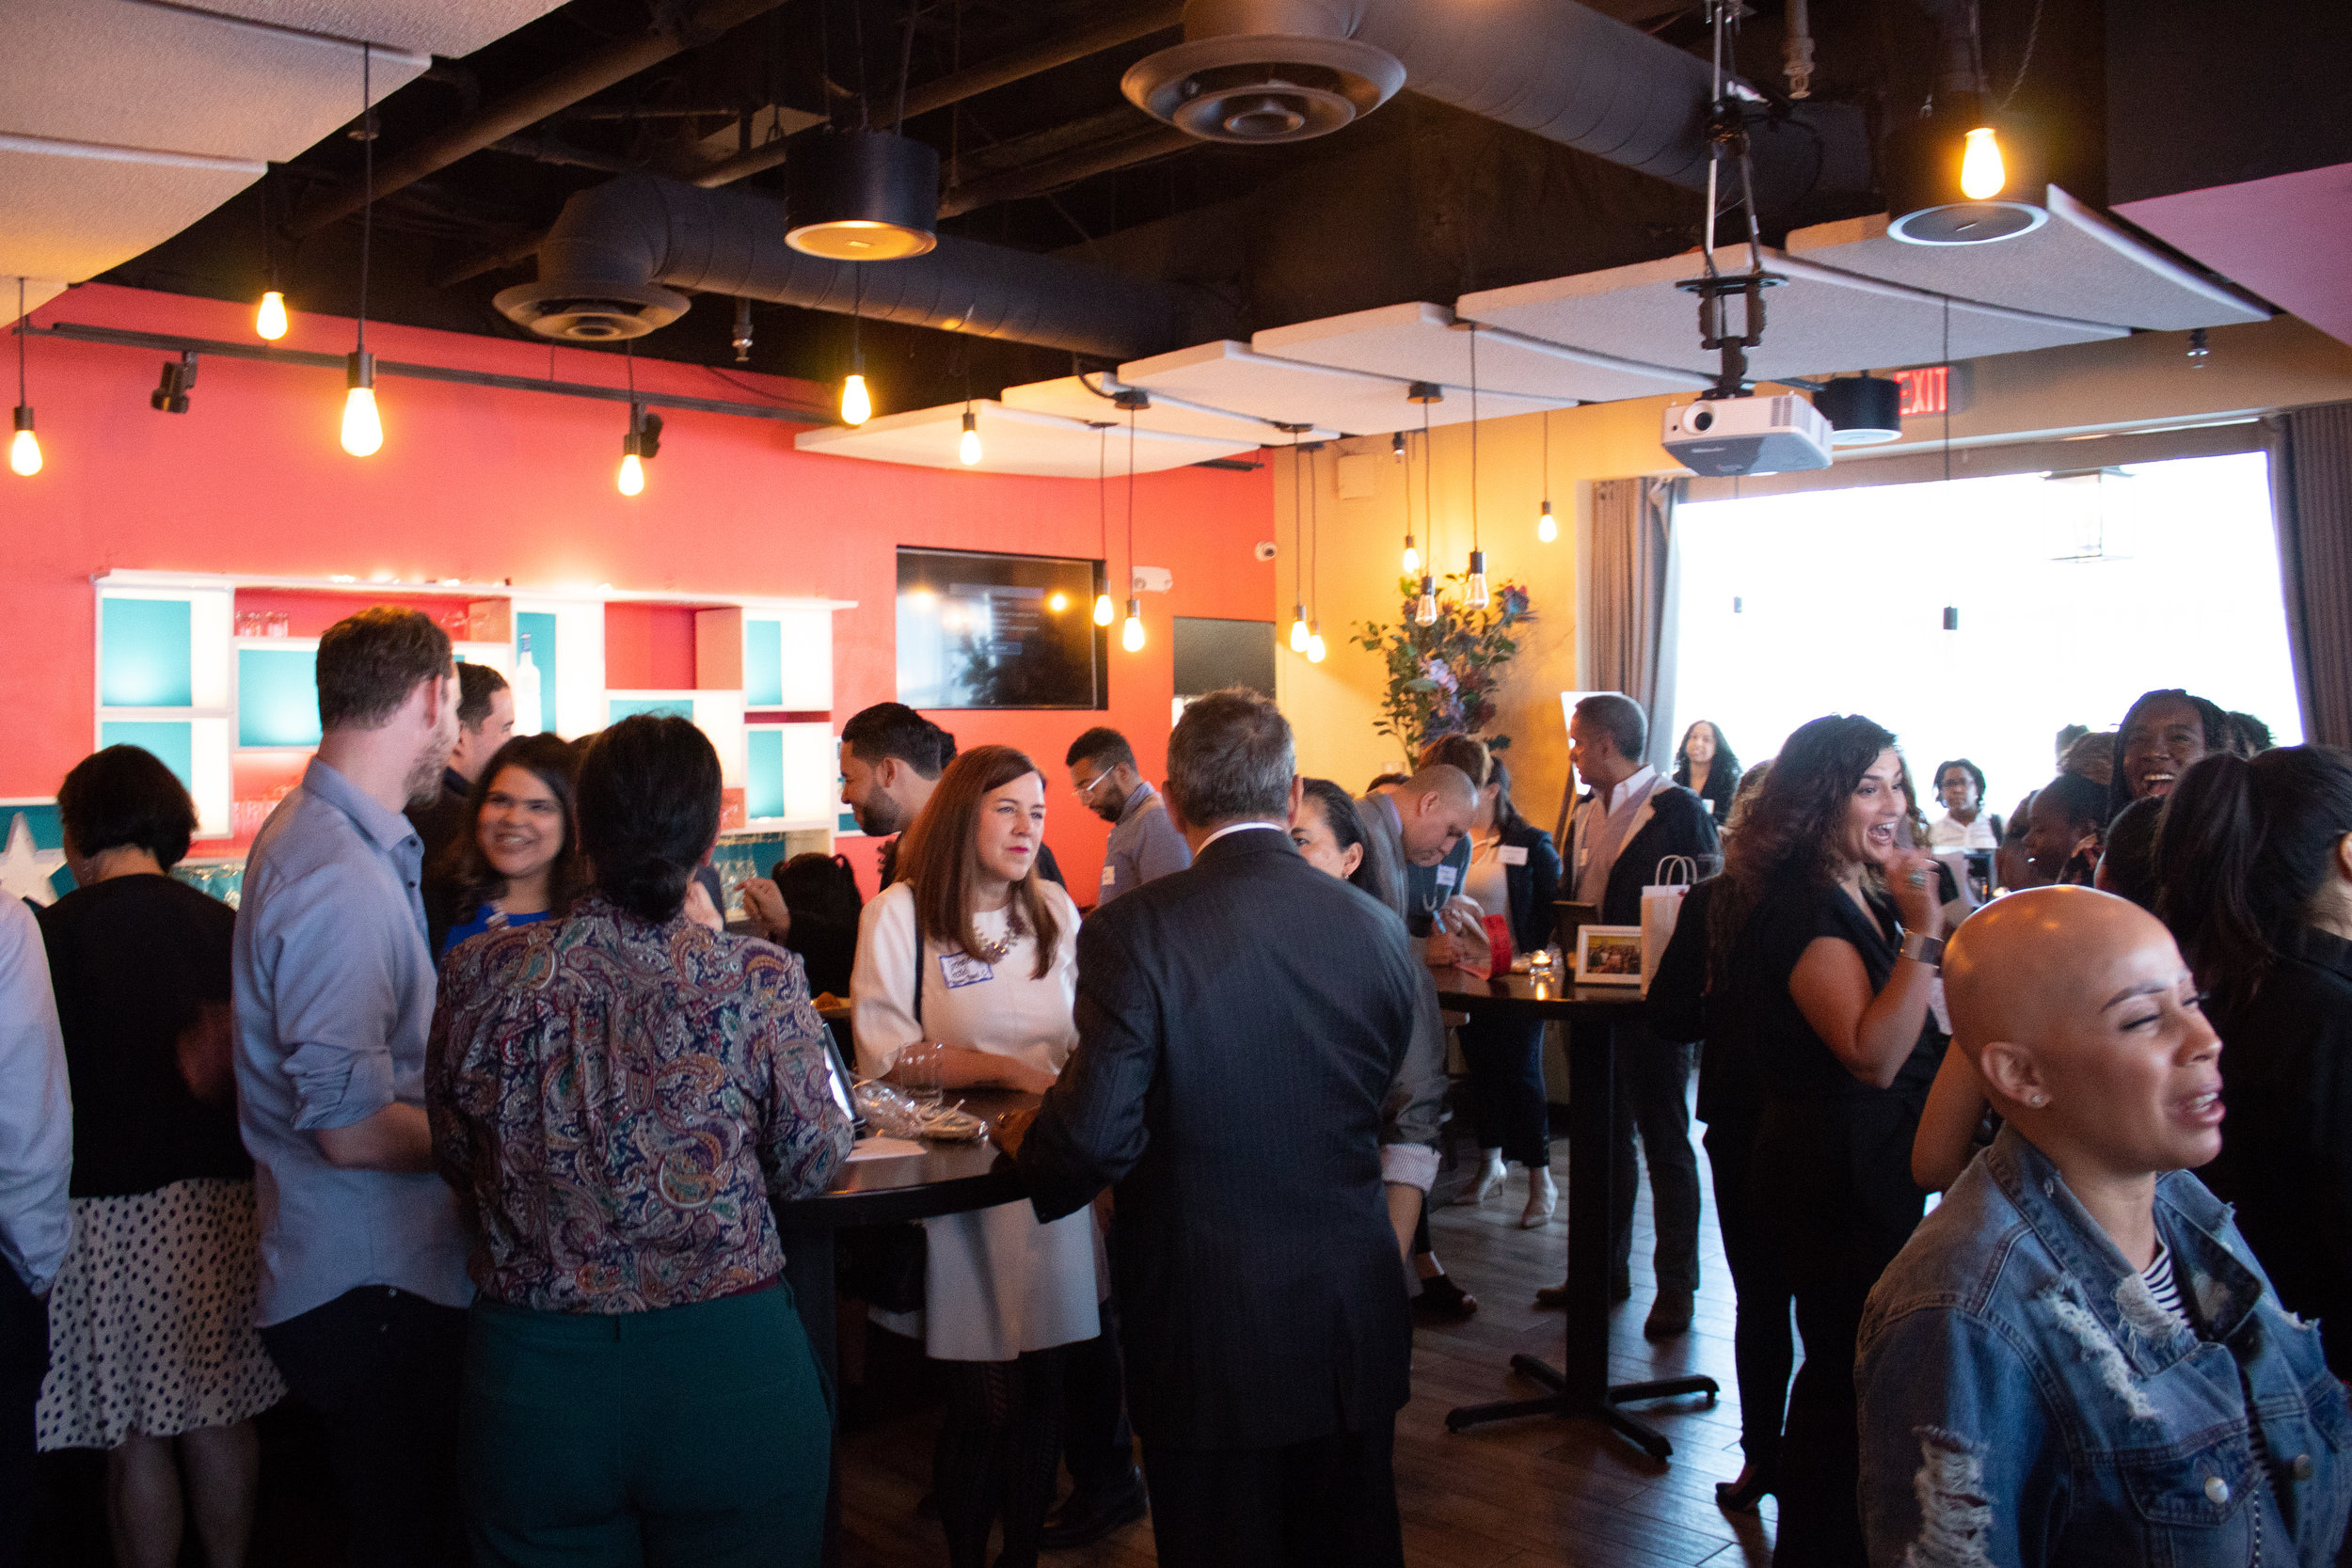 Attendees mingle, have drinks and socialize during The Power of One Fundraiser.